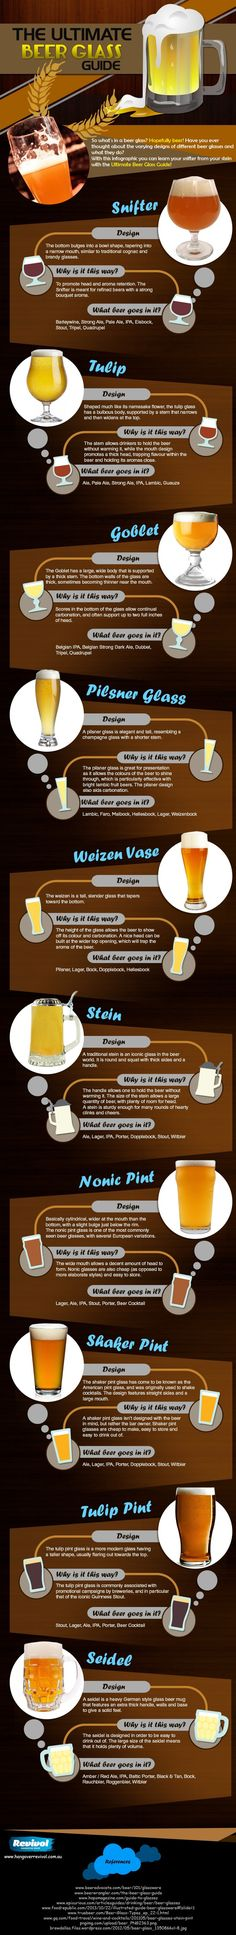 Types of beer glasses. Very good infographic